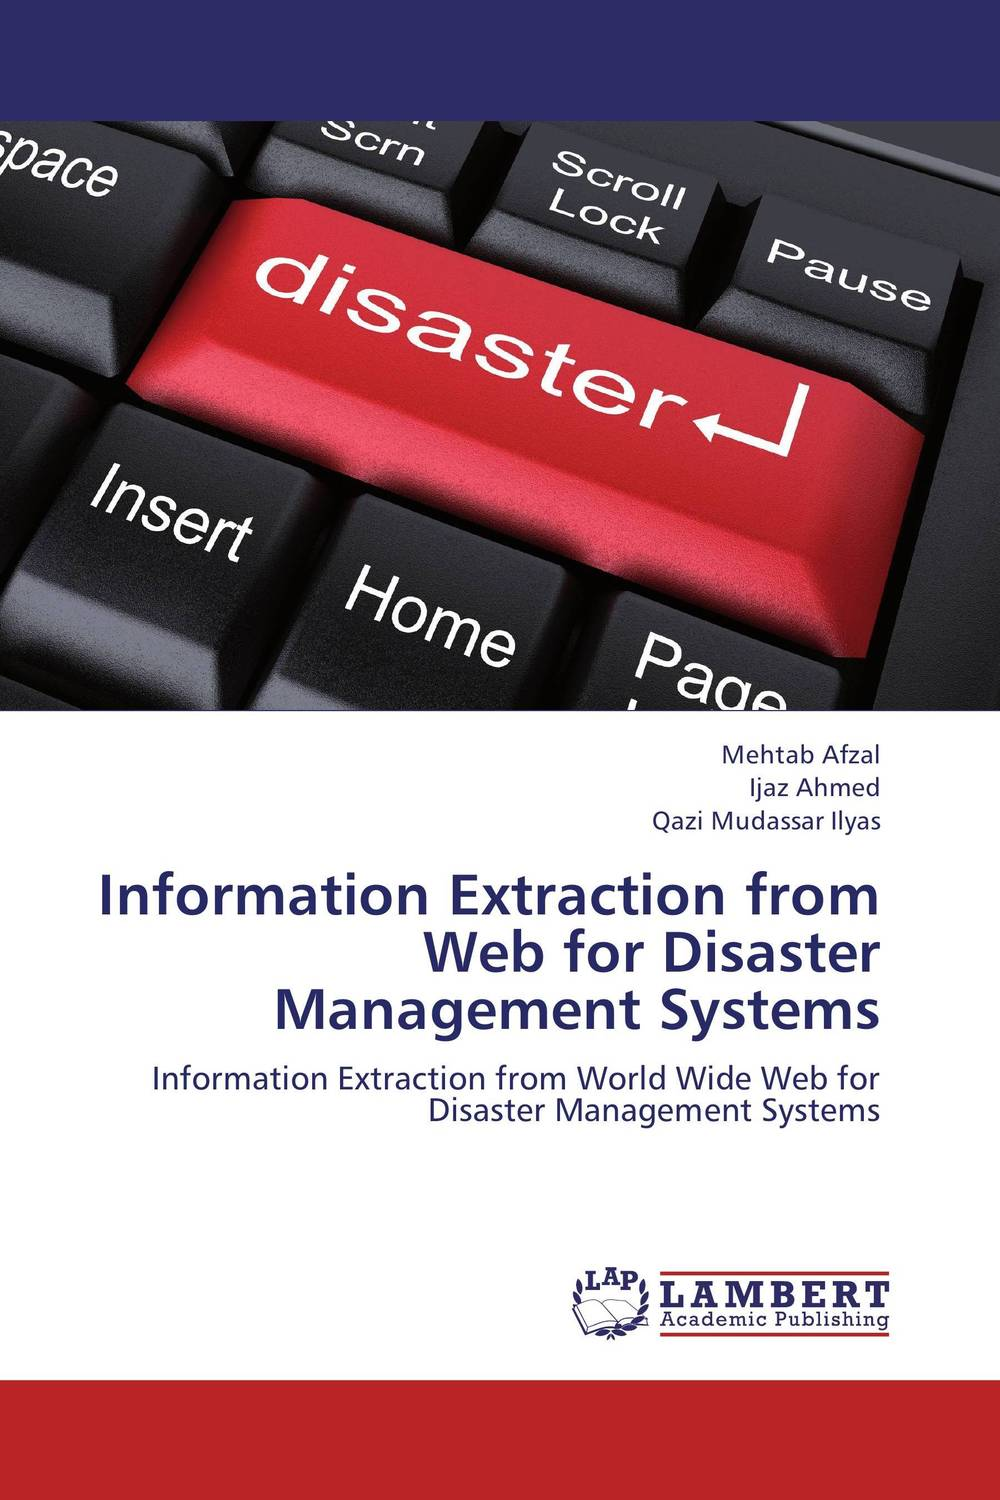 Information Extraction from Web for Disaster Management Systems ноутбук digma citi e210 11 6 intel atom x5 z8350 1 44ггц 2гб 32гб ssd intel hd graphics 400 windows 10 home et2005ew черный